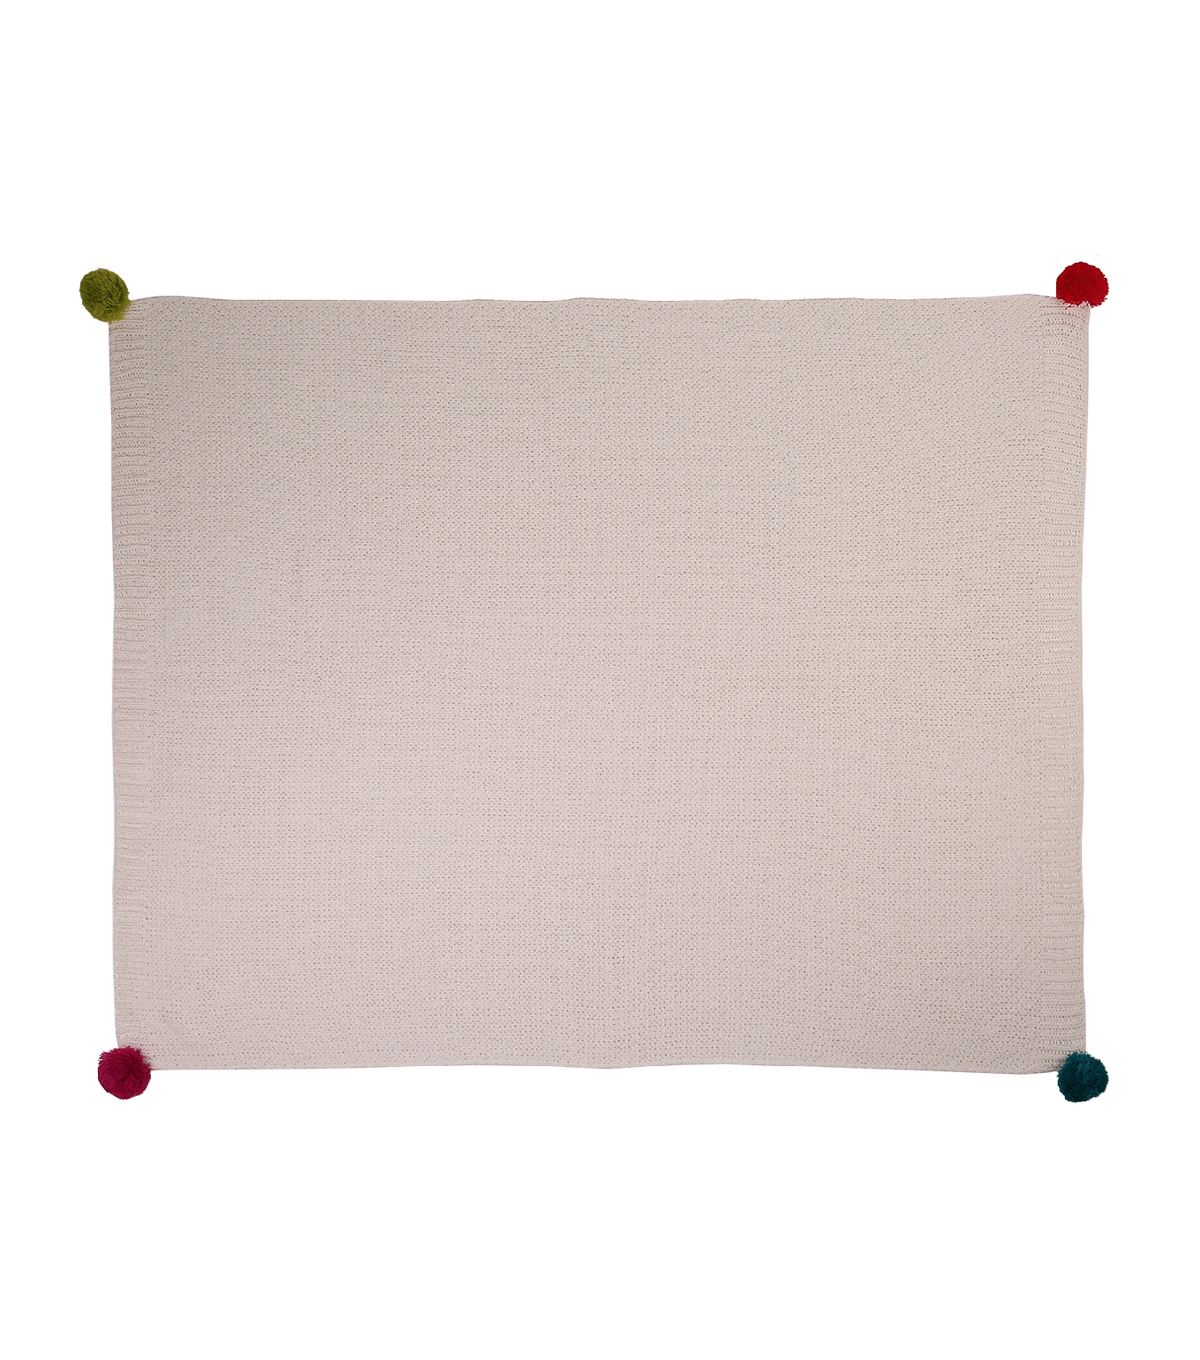 Maker\u0027s Holiday Christmas Ho Ho Ho Decor Throw with Pom Pom-Cream